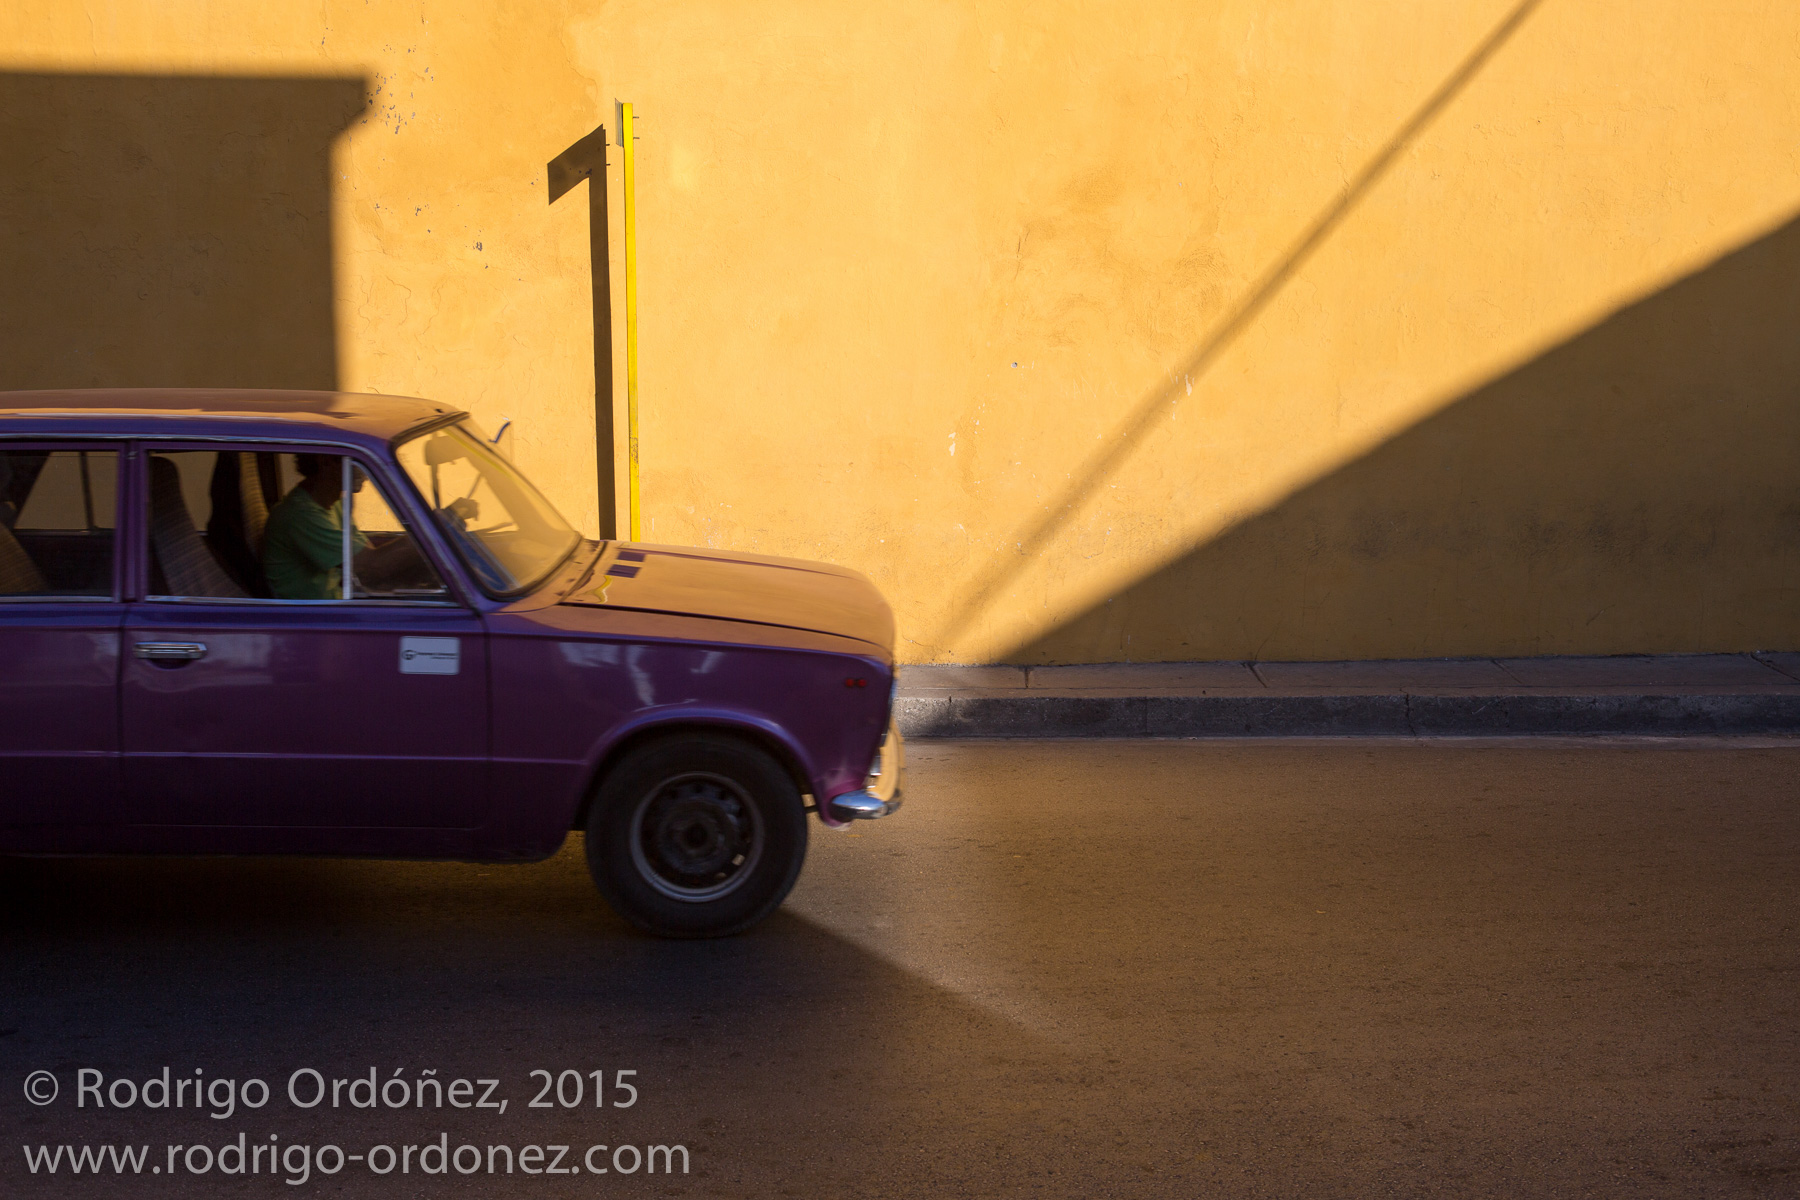 A car drives through the streets of Santiago de Cuba, Cuba, on December 25, 2014. (Photo: Rodrigo Ordóñez)